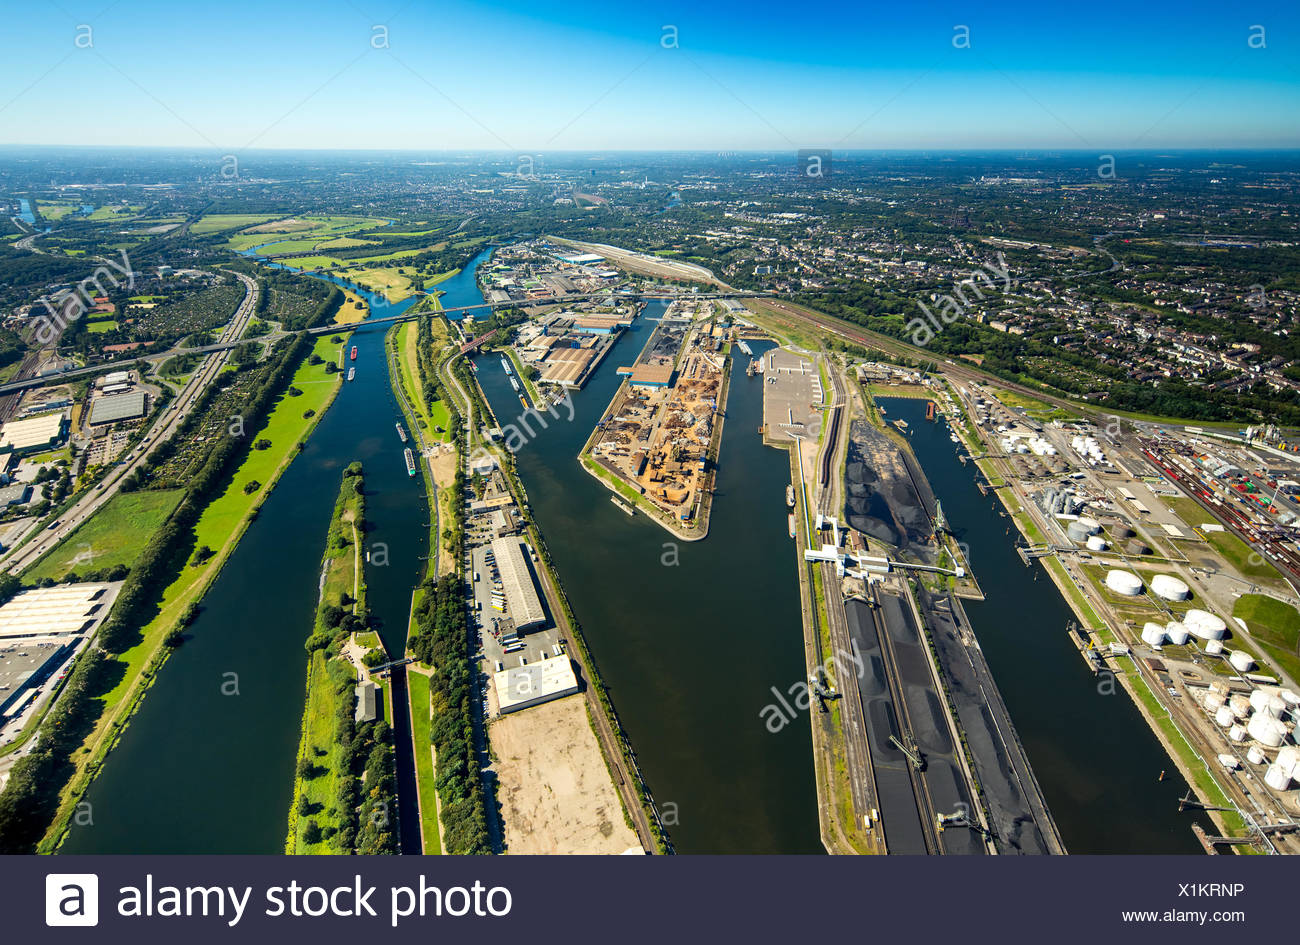 Duisport, inland port, Rhine, Duisburg, Ruhr district, North Rhine-Westphalia, Germany - Stock Image